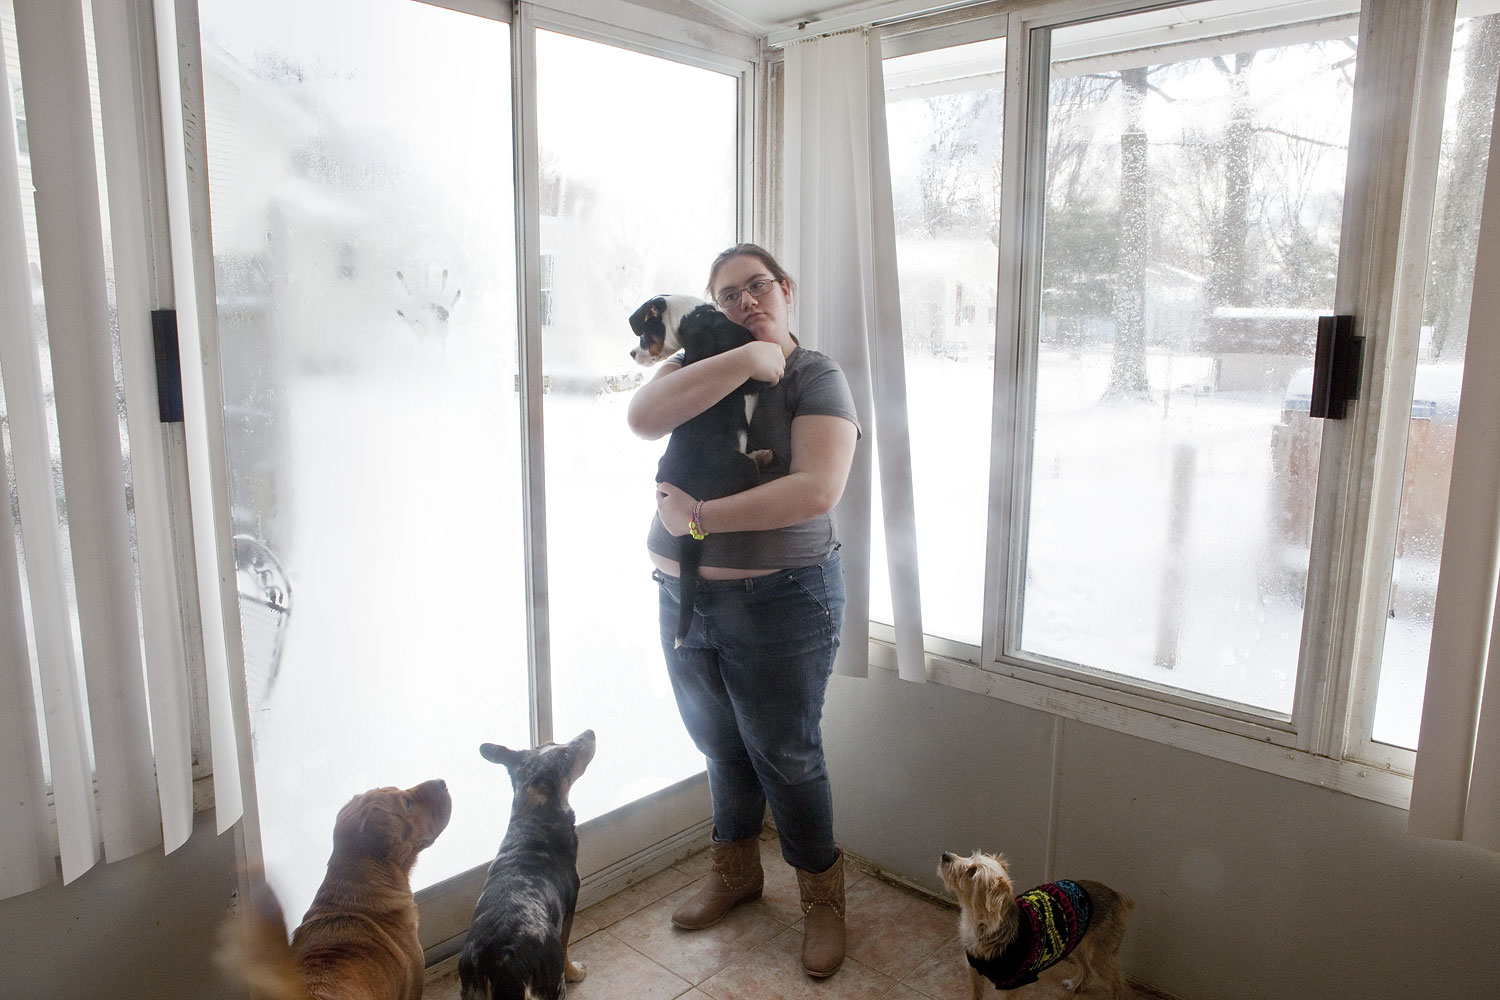 Kimberly Rhodes photographed Friday, January 3, 2014 at her family home in Boardman, Ohio